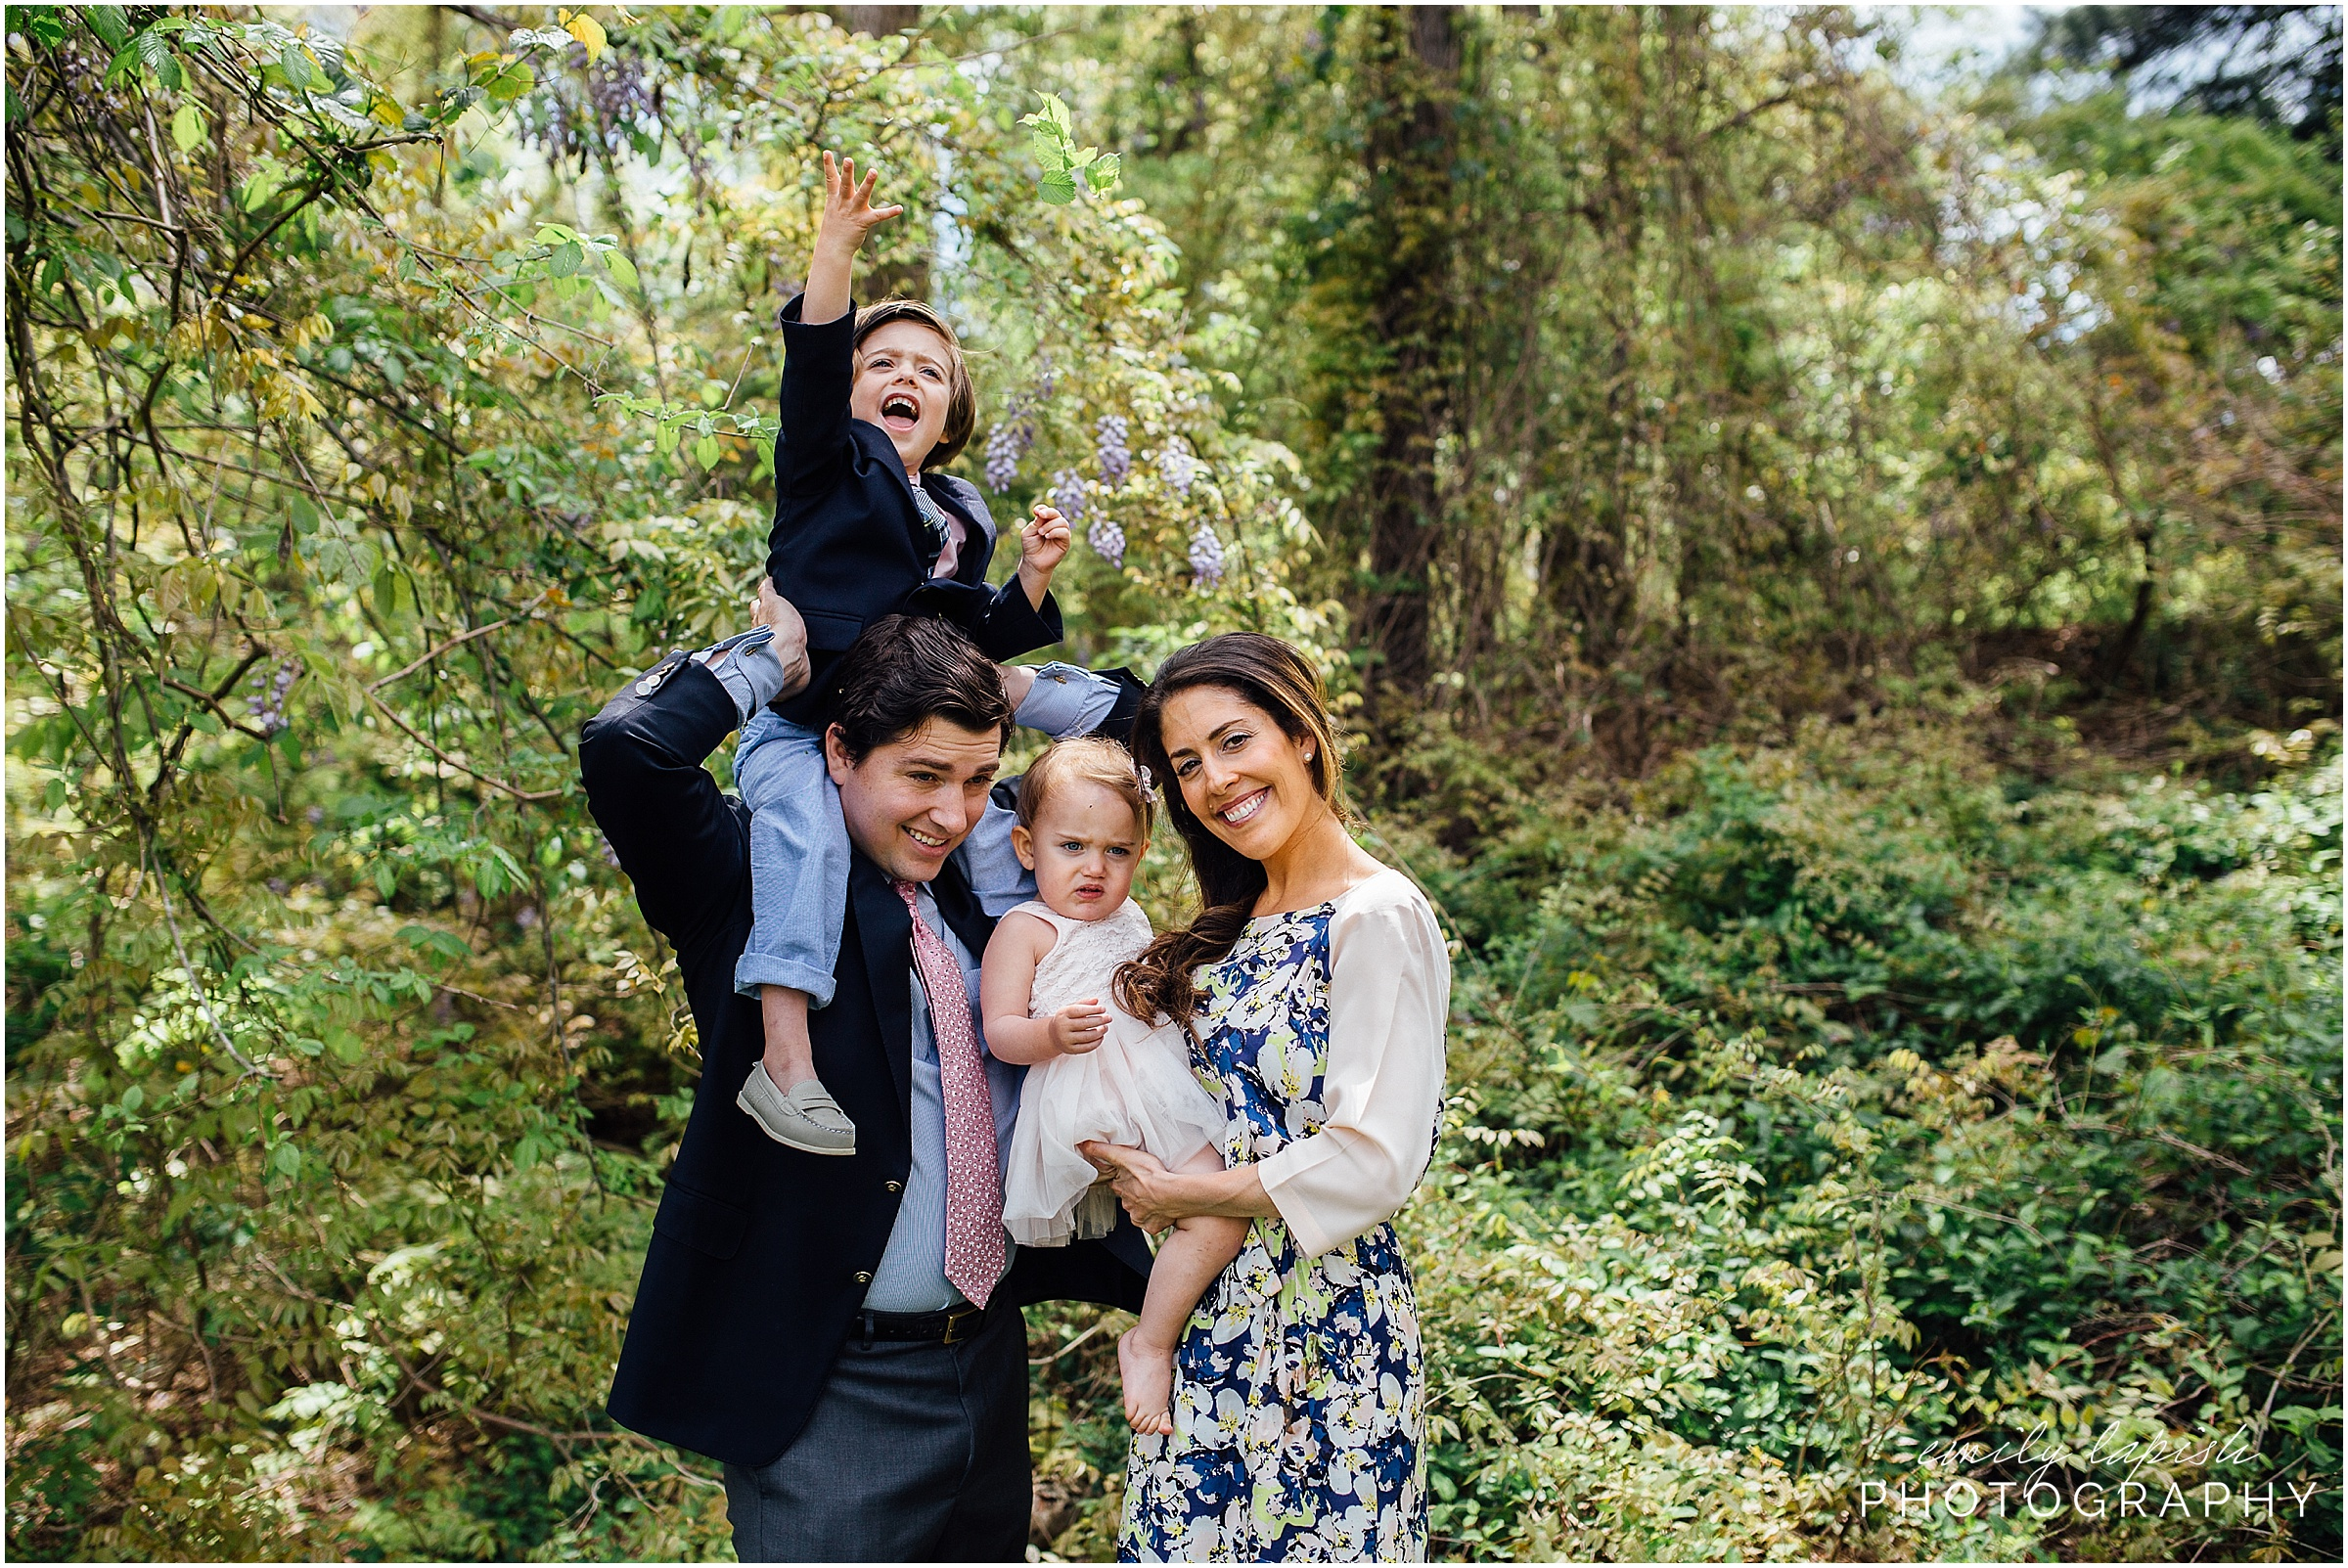 lifestyle family photography by Emily Lapish Photography in Chattanooga TN_0023